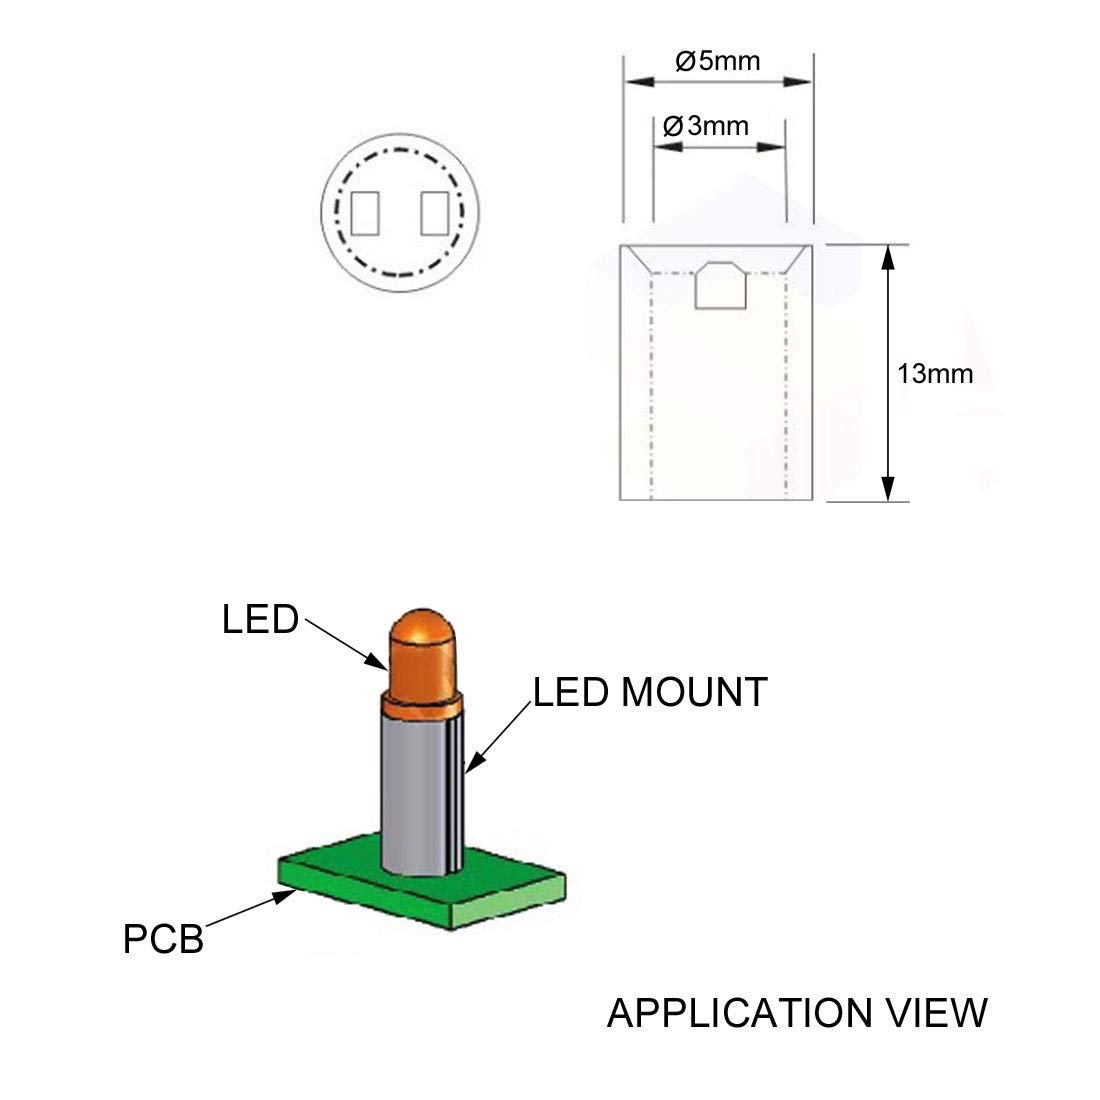 uxcell 1000pcs 3x4x5mm Nylon Straight Insulating Tube PCB LED Mount Standoff Spacer